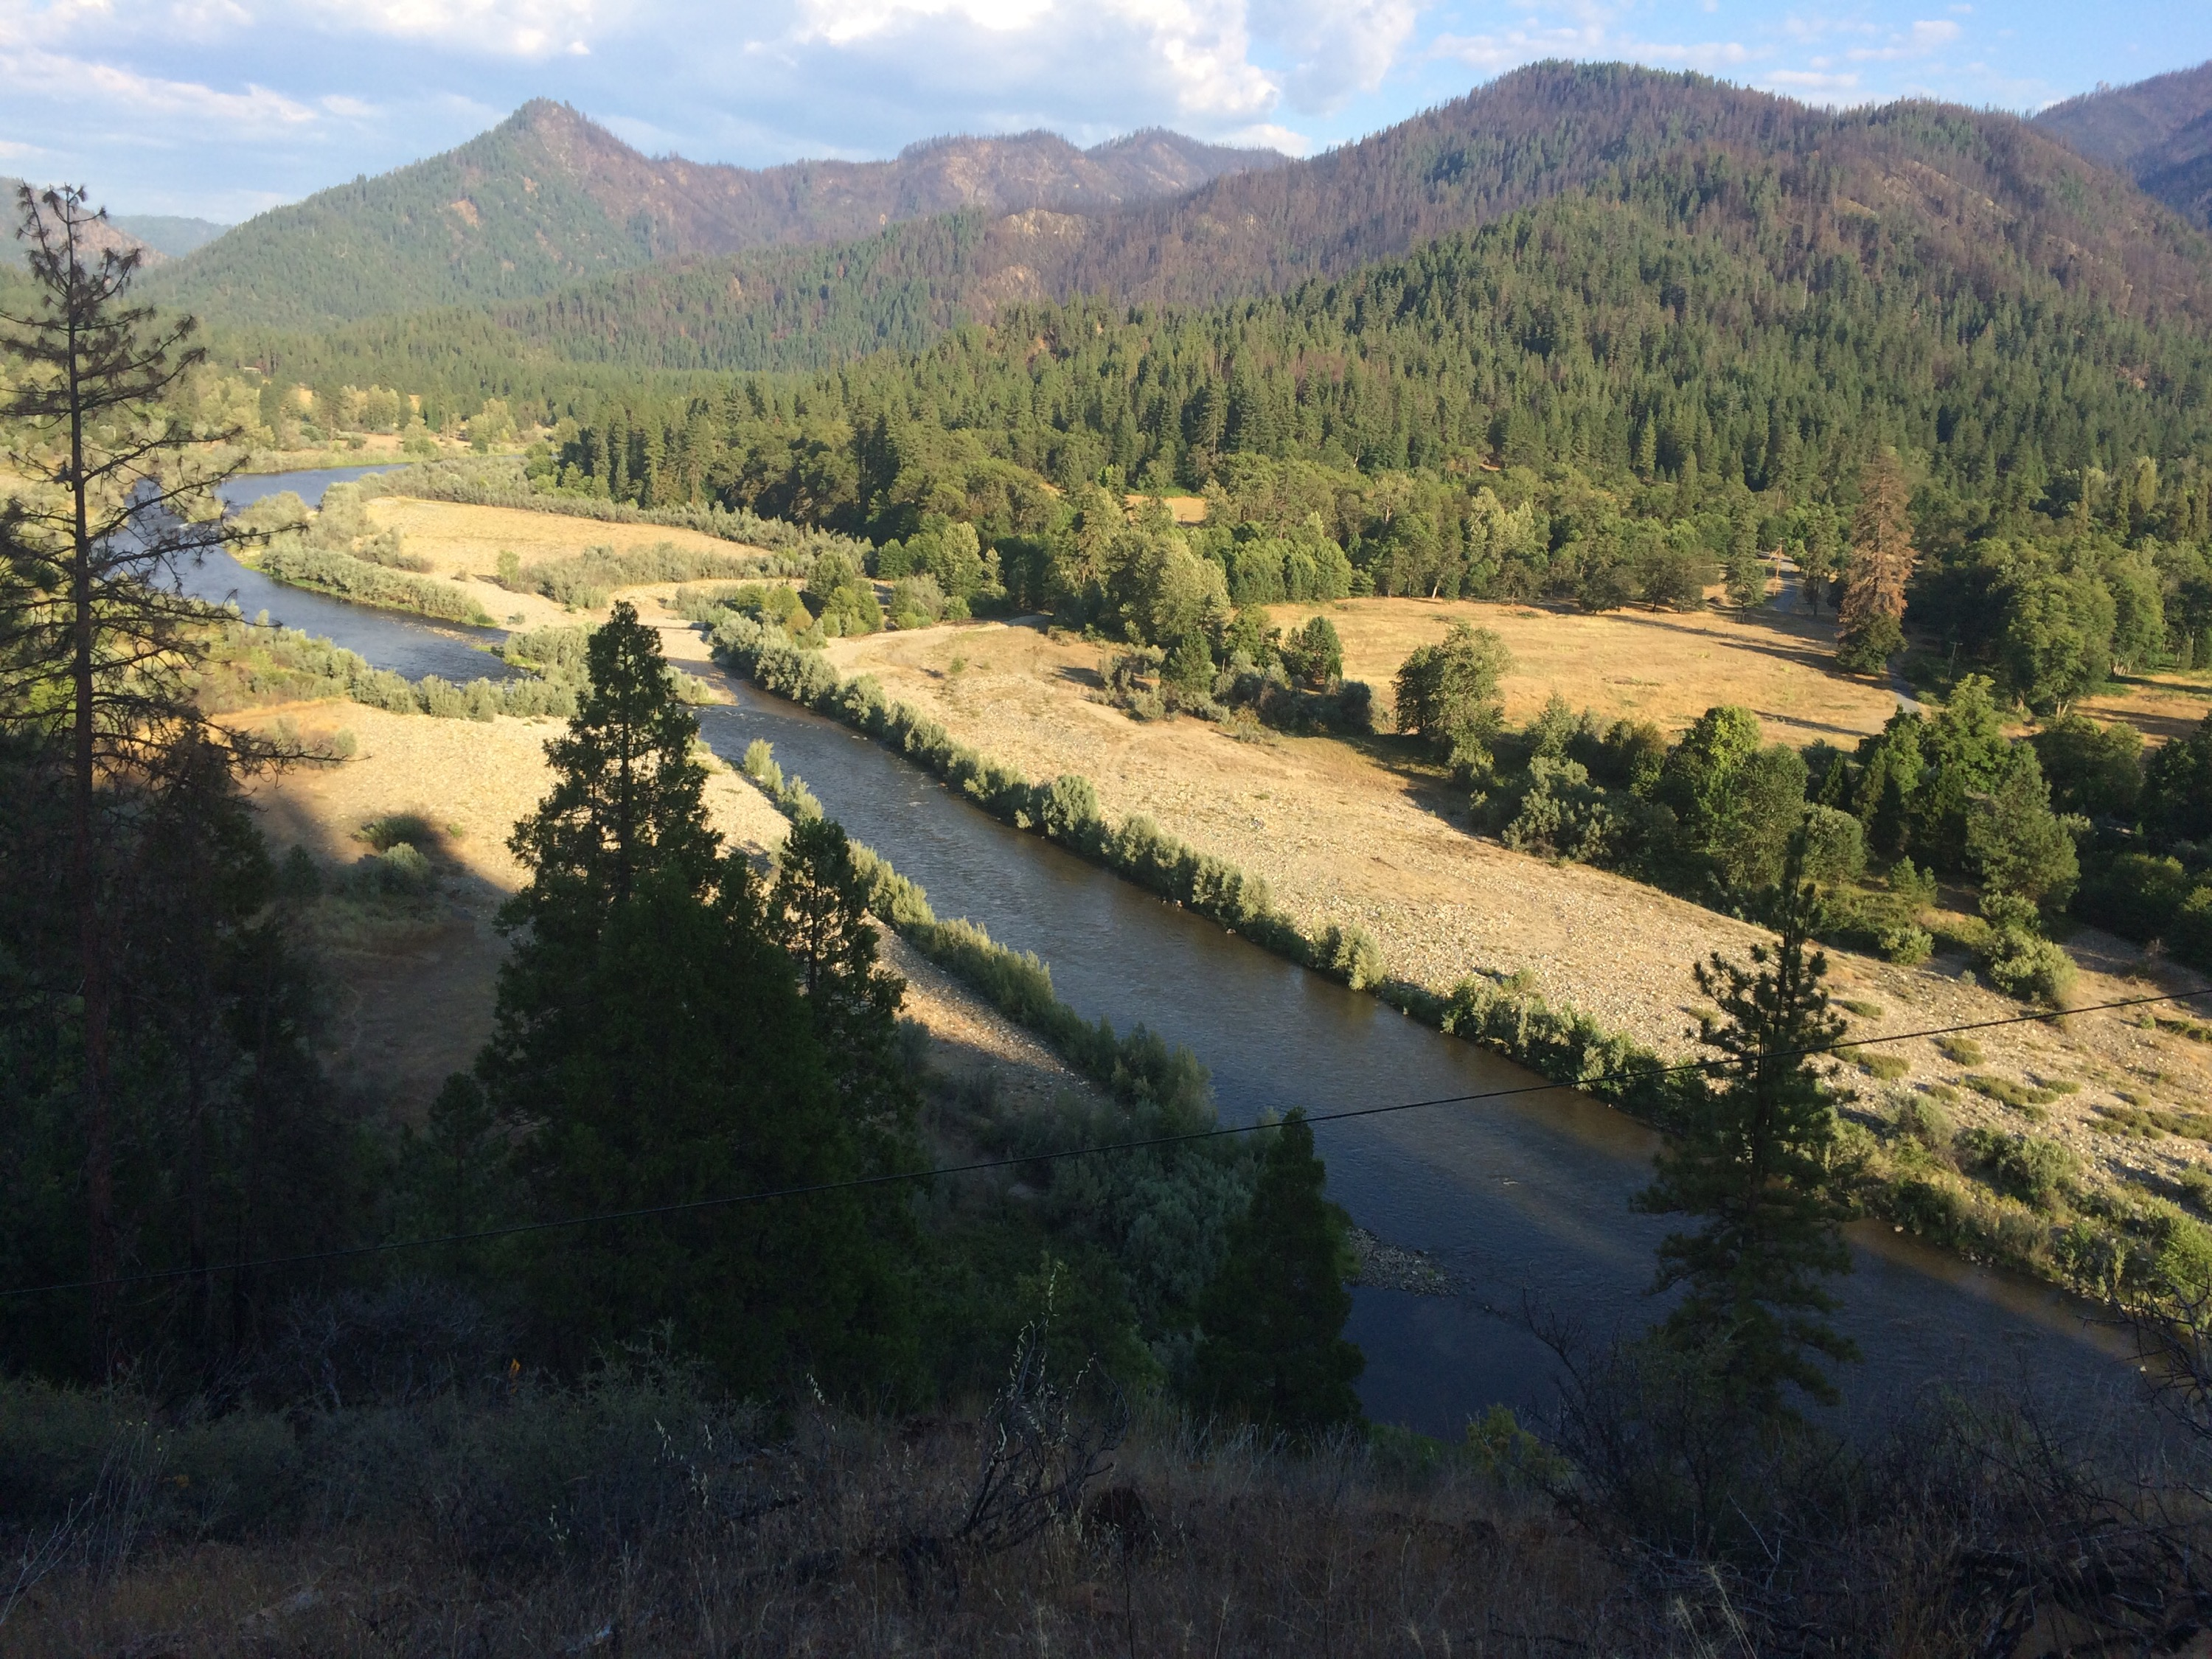 View of the Klamath River